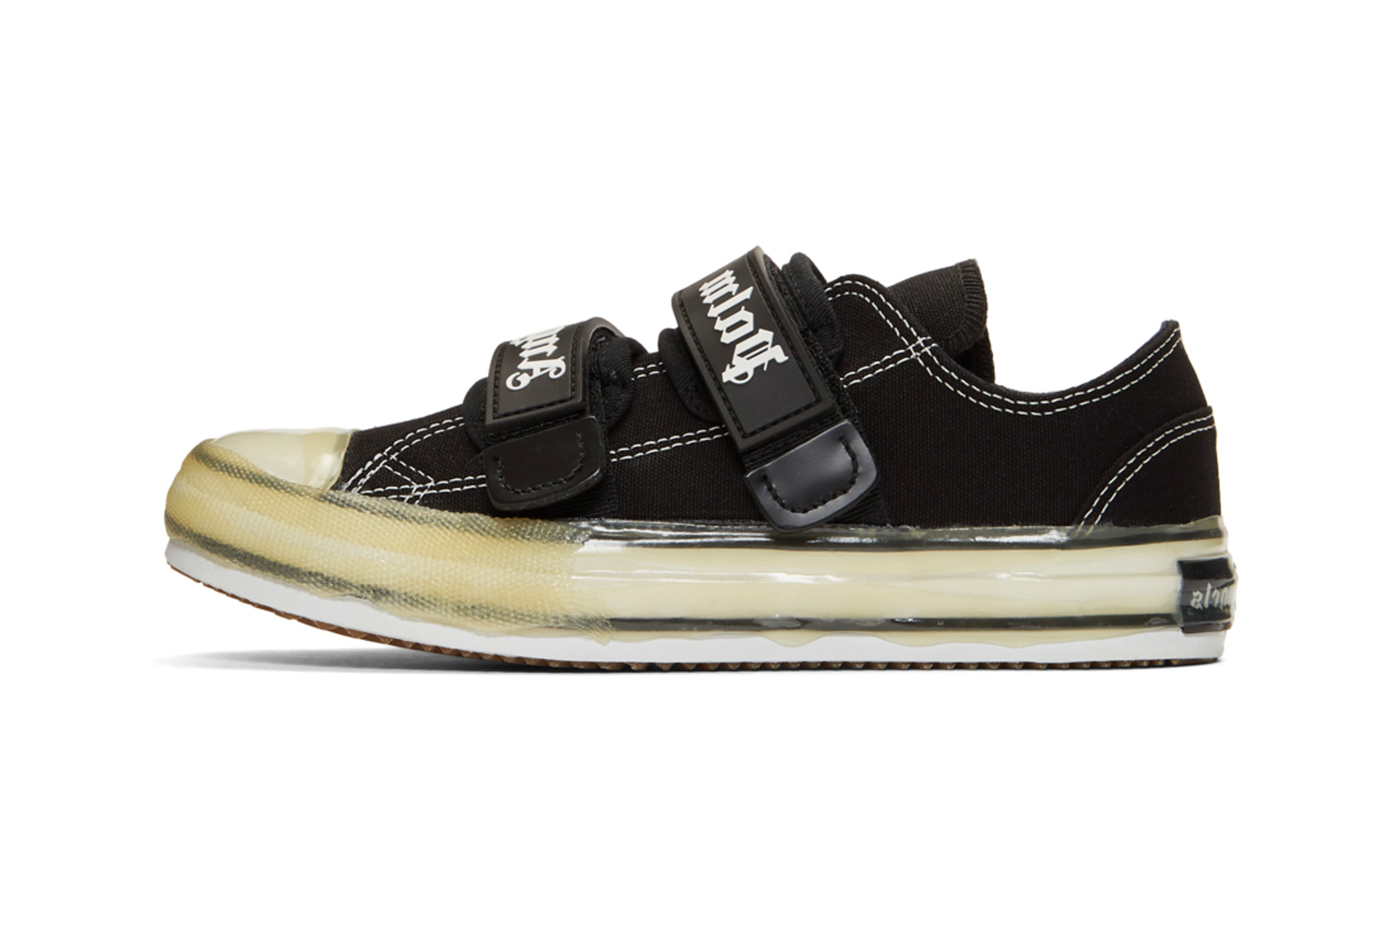 Palm Angels Vulcanized Sneakers